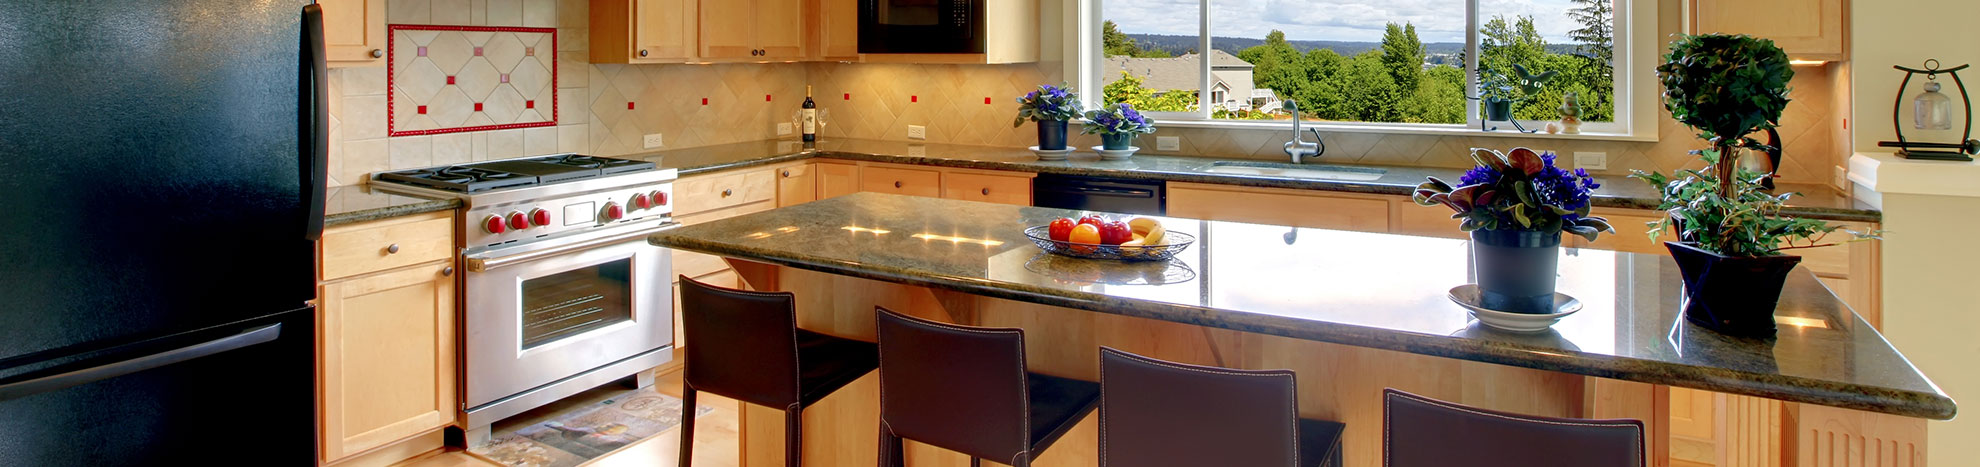 Kitchen Remodeling in Cleveland Ohio